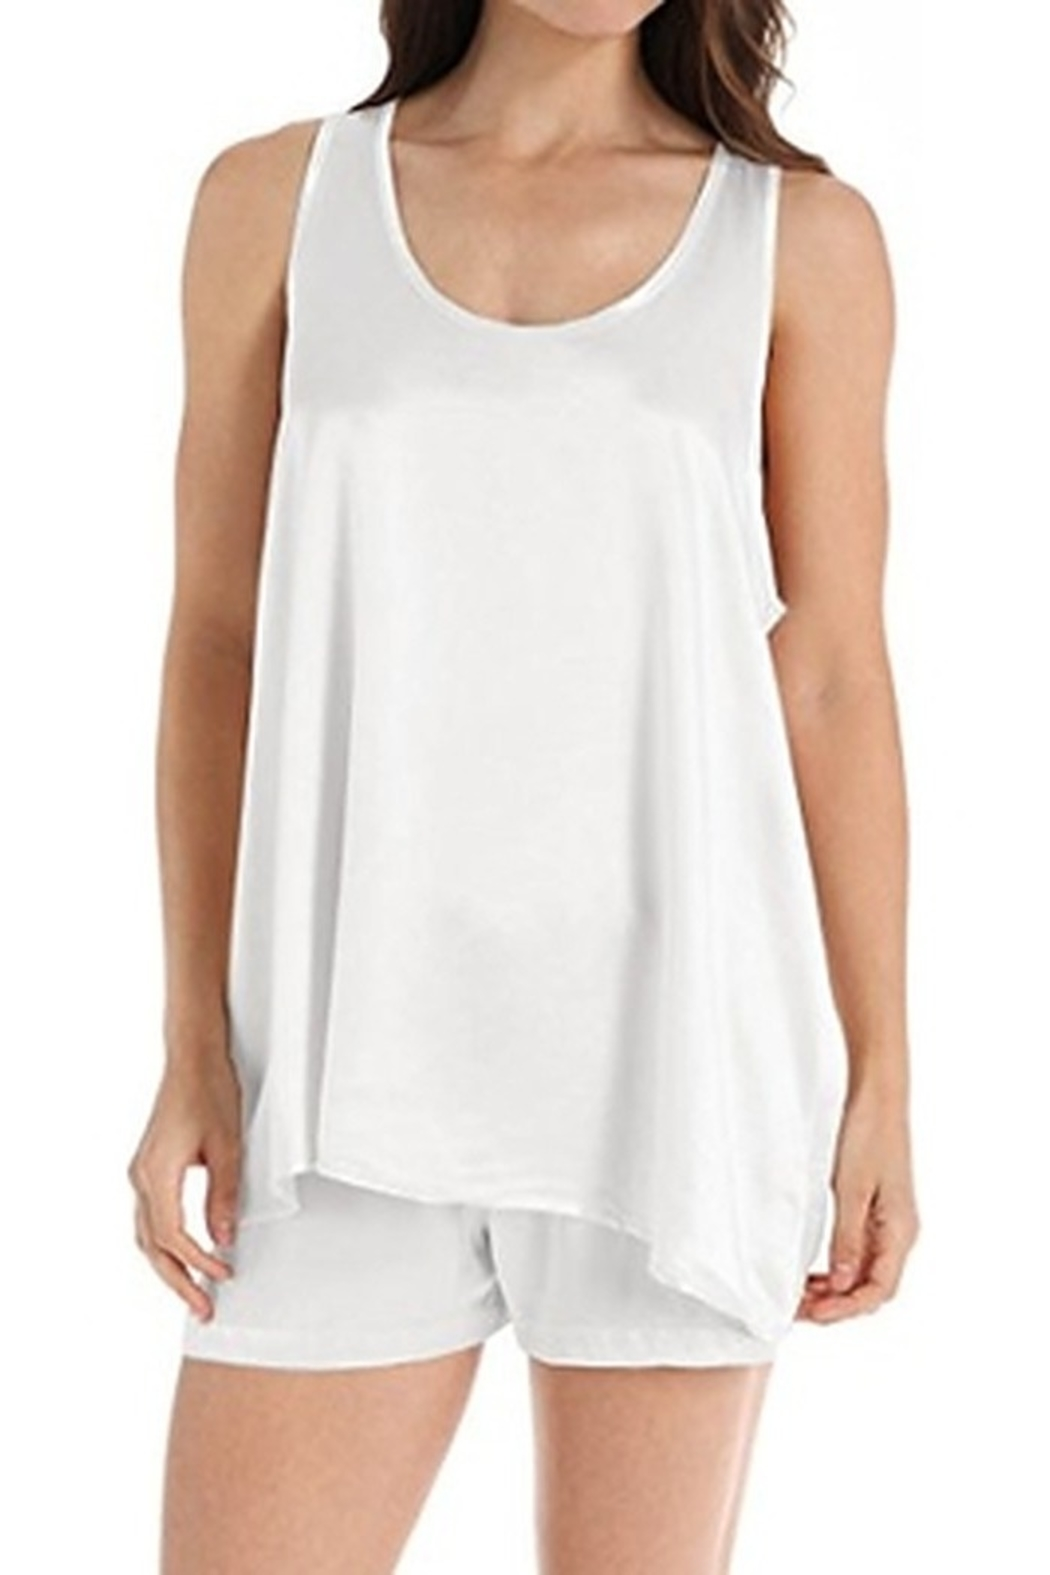 PJHARLOW Satin Cami With Pleated Back - Front Cropped Image